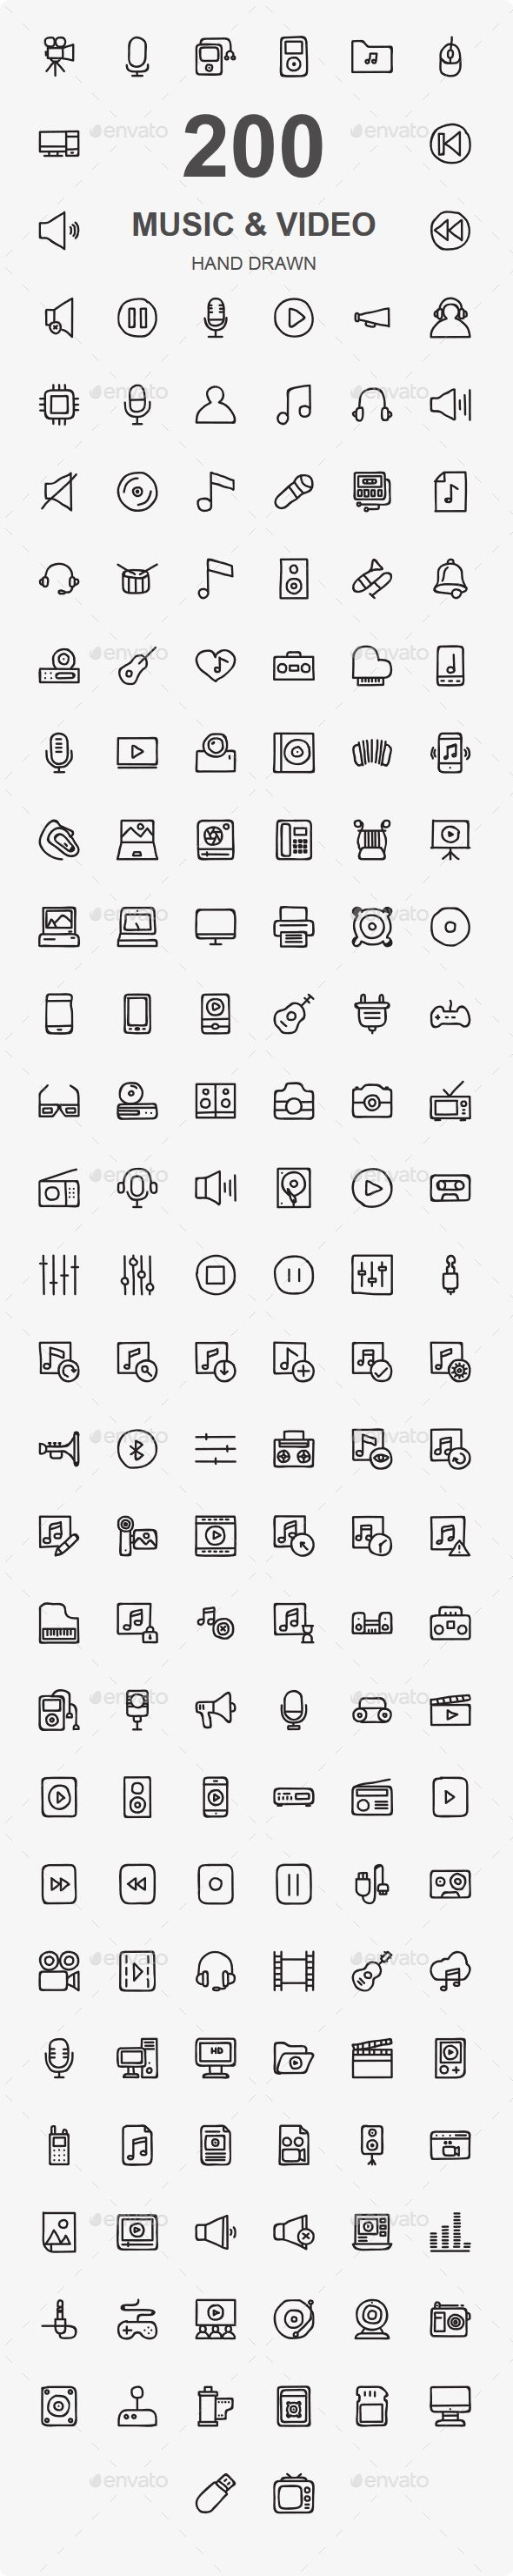 Music Audio And Video Hand Drawn icons - Media Icons